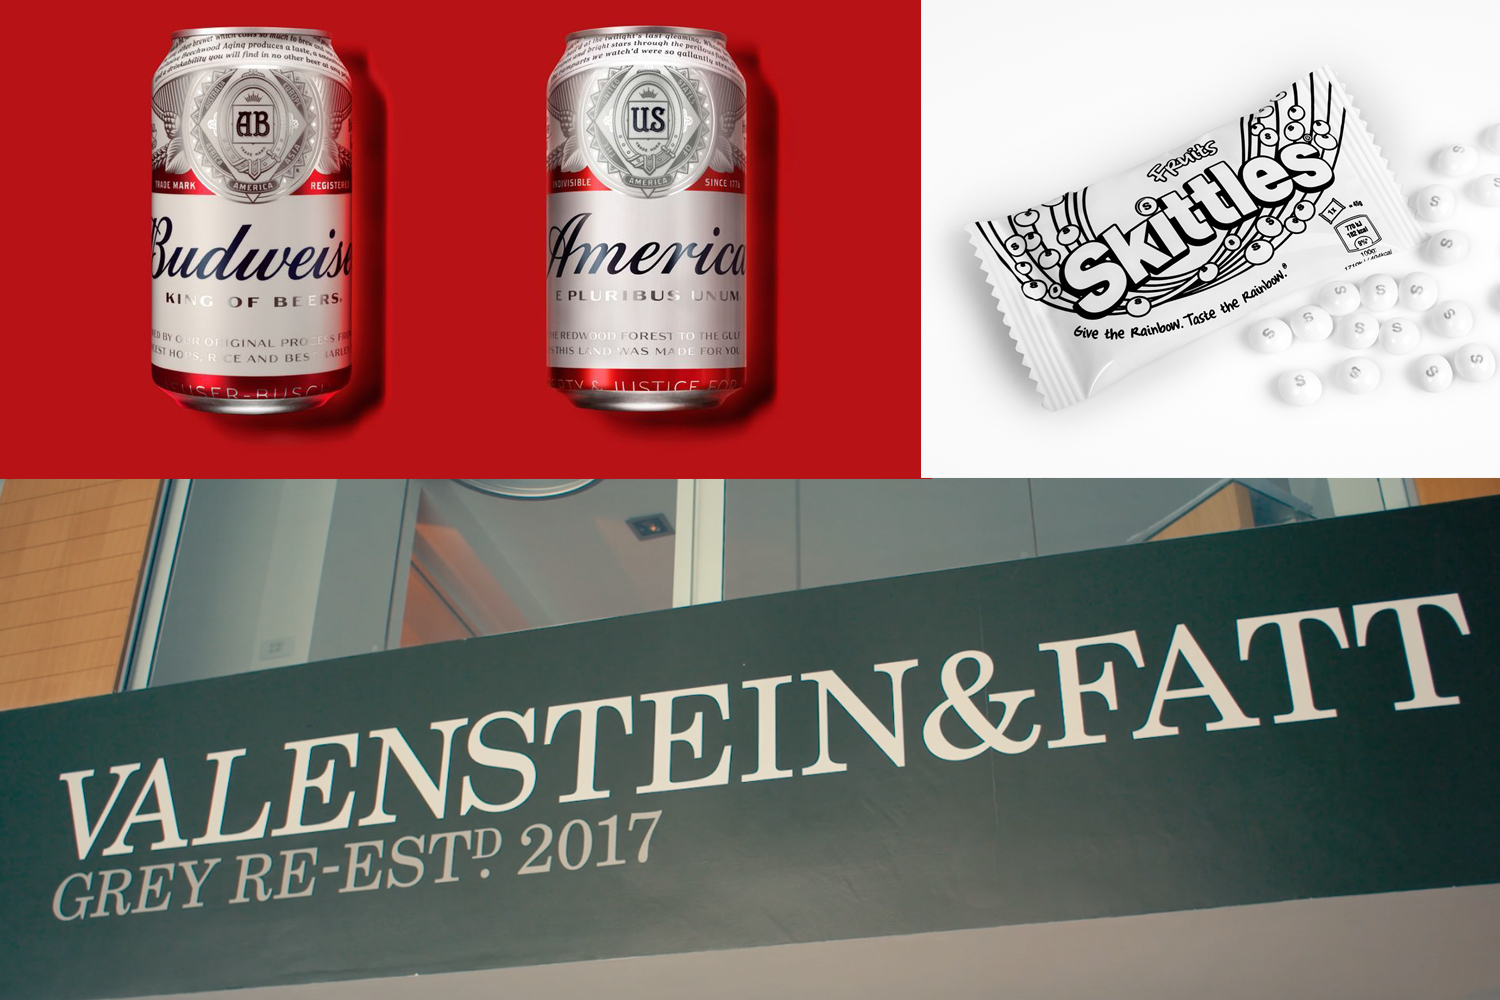 Picture credits: Budweiser by JKR, Skittles ,   Valenstein and Fatt